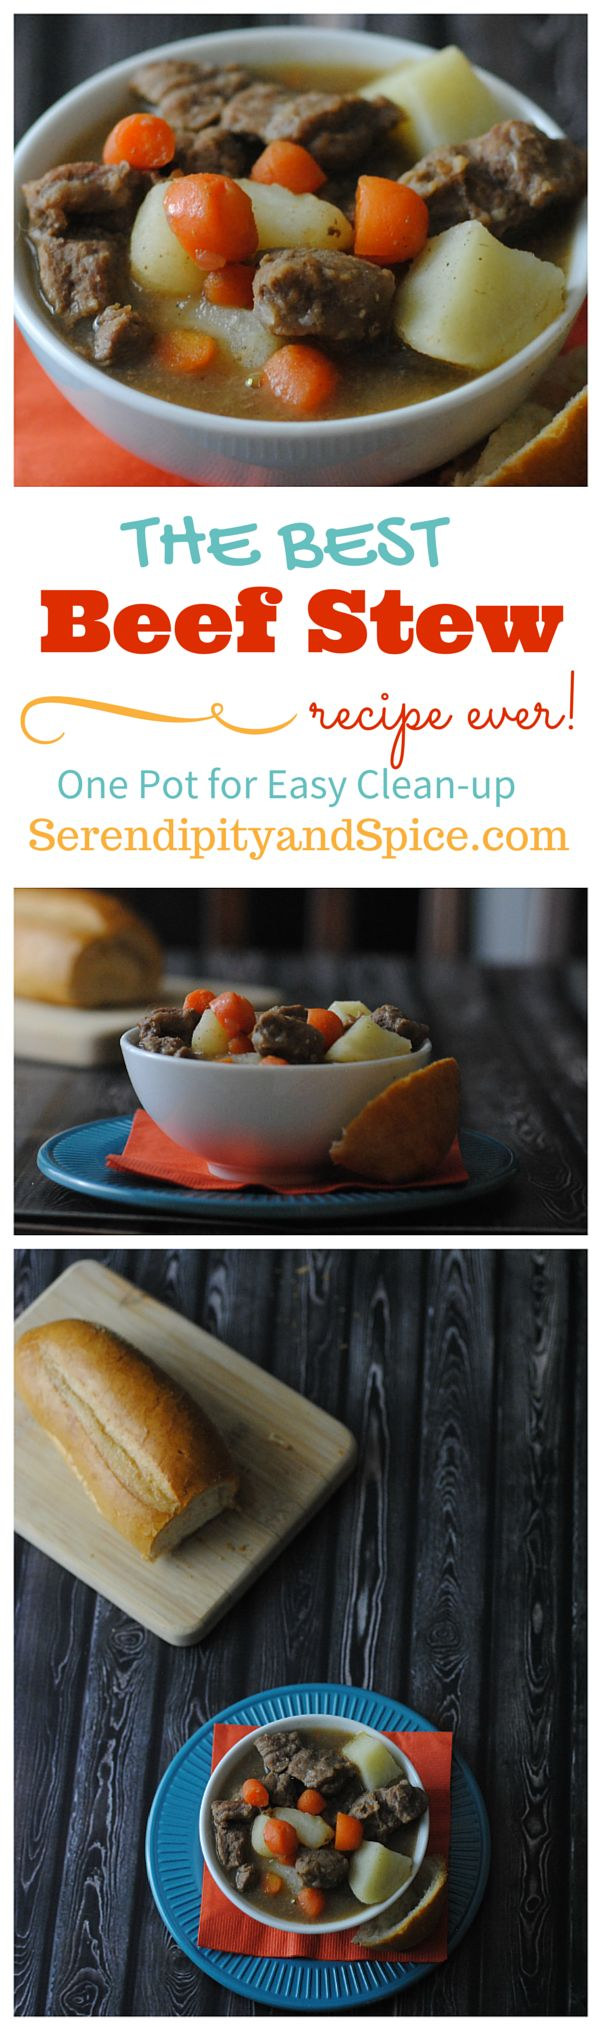 This one dish beef stew recipe is so easy and delicious....packed full of flavor and healthy veggies!